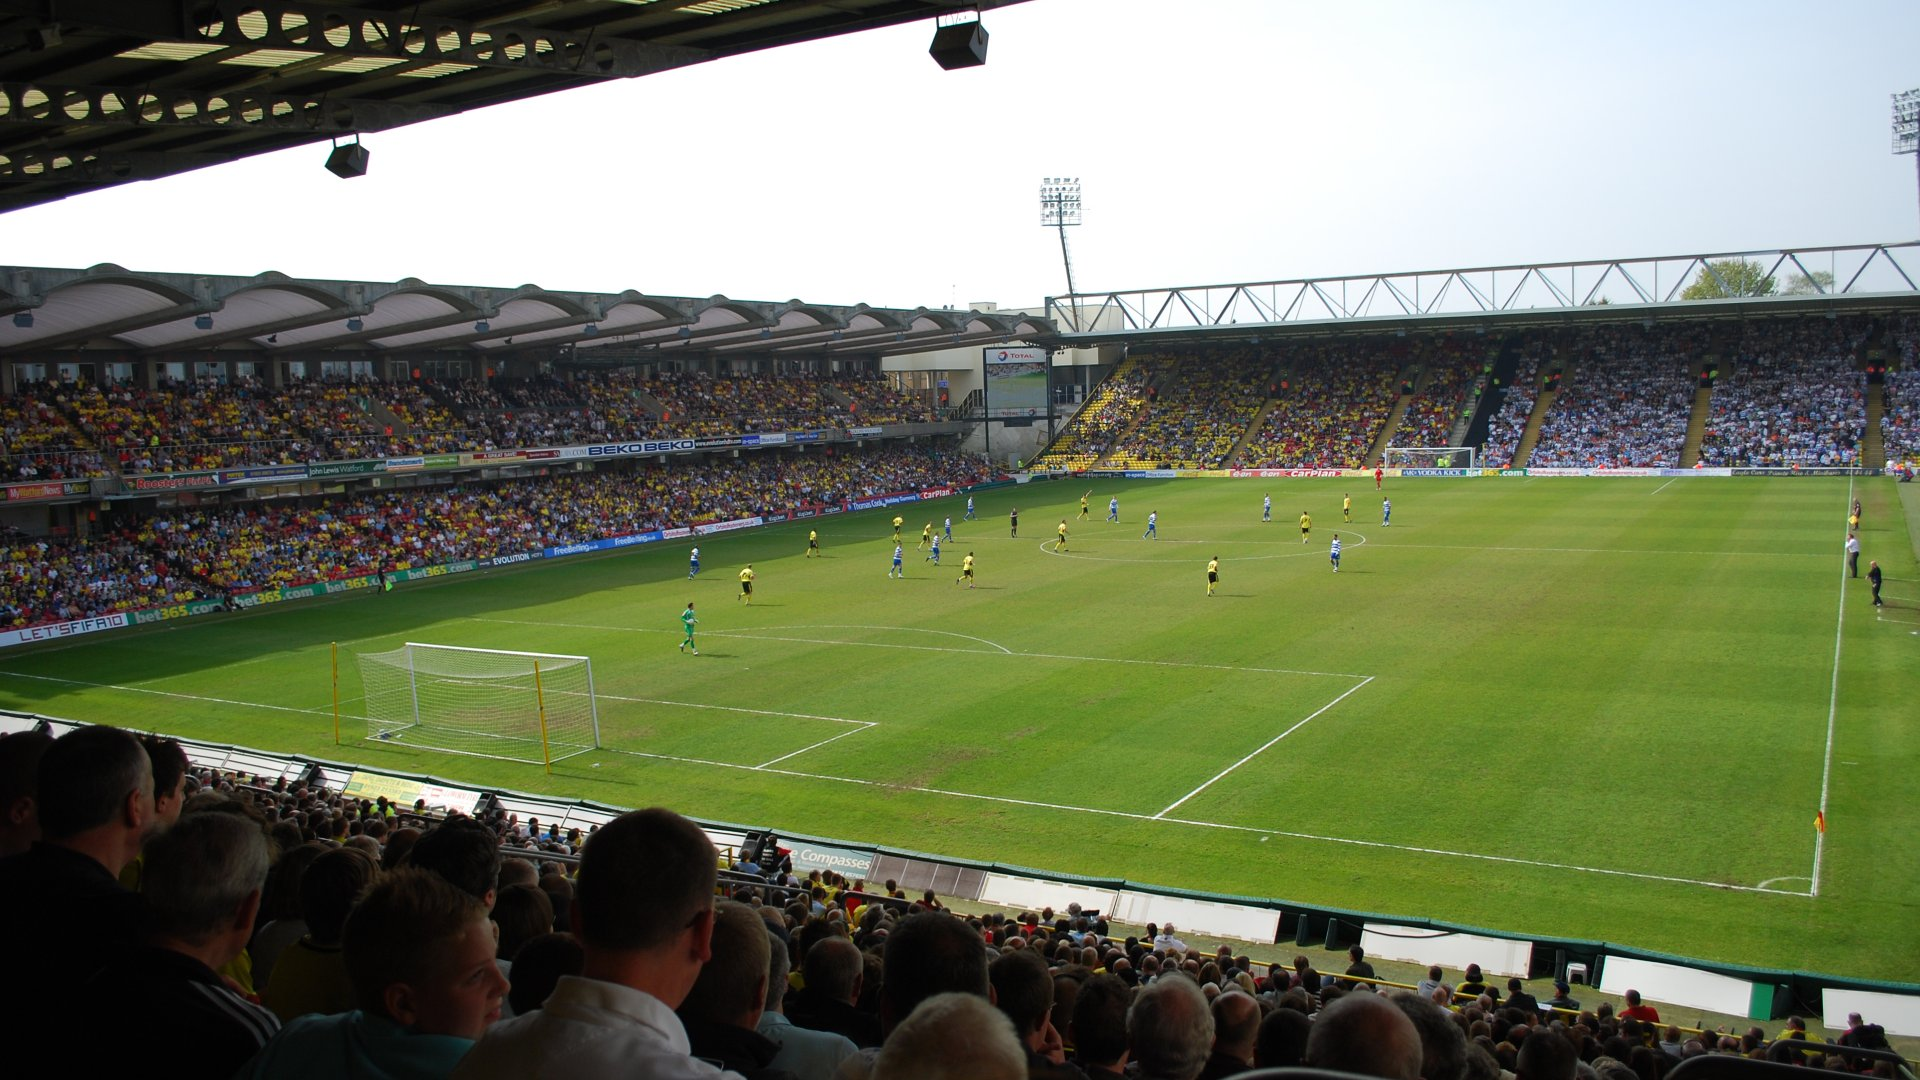 Watford F.C. (Football Club) Of The Barclay's Premier League